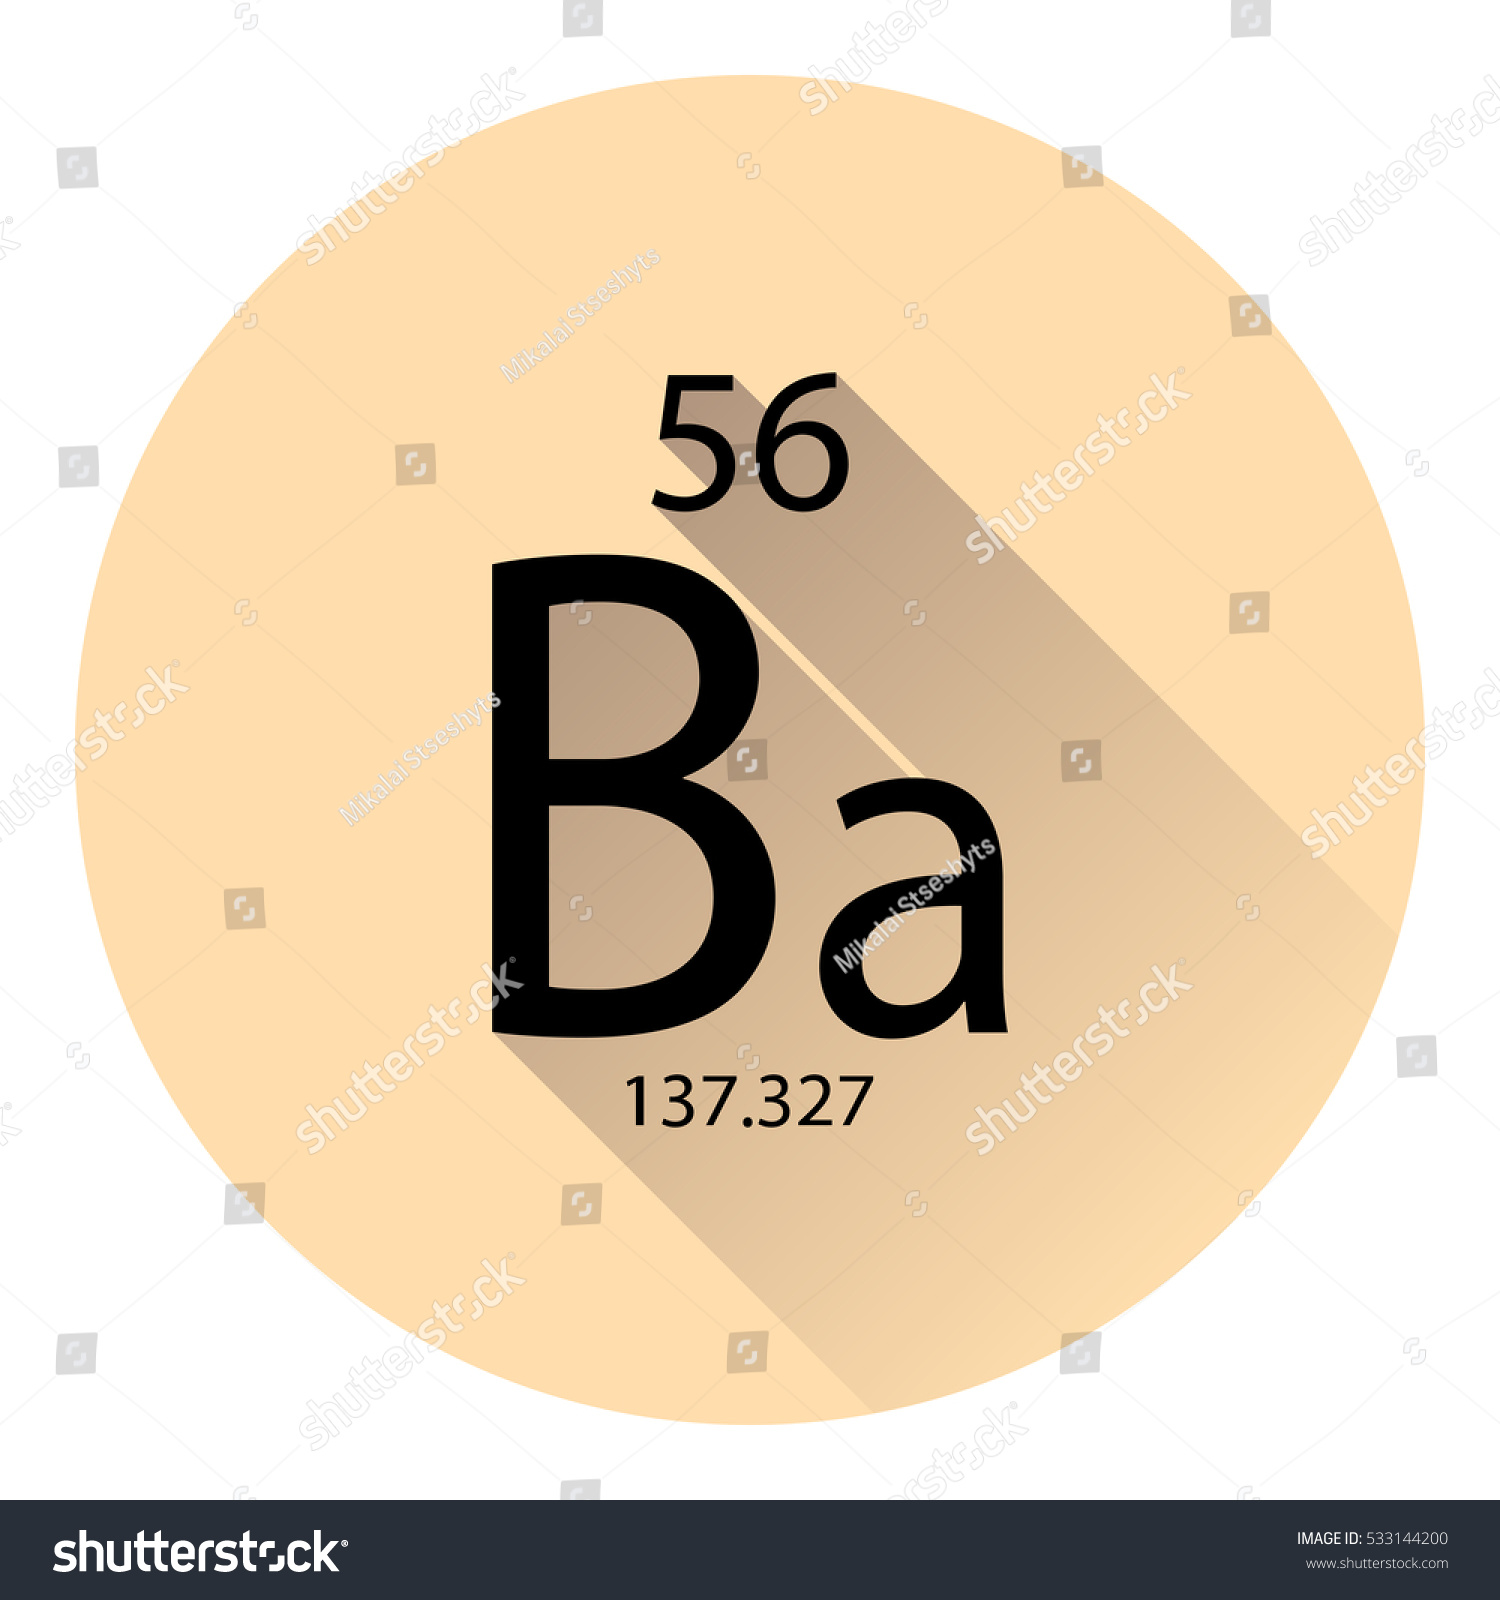 Periodic table element barium basic properties stock vector the periodic table element barium with the basic properties flat style with long shadow gamestrikefo Gallery